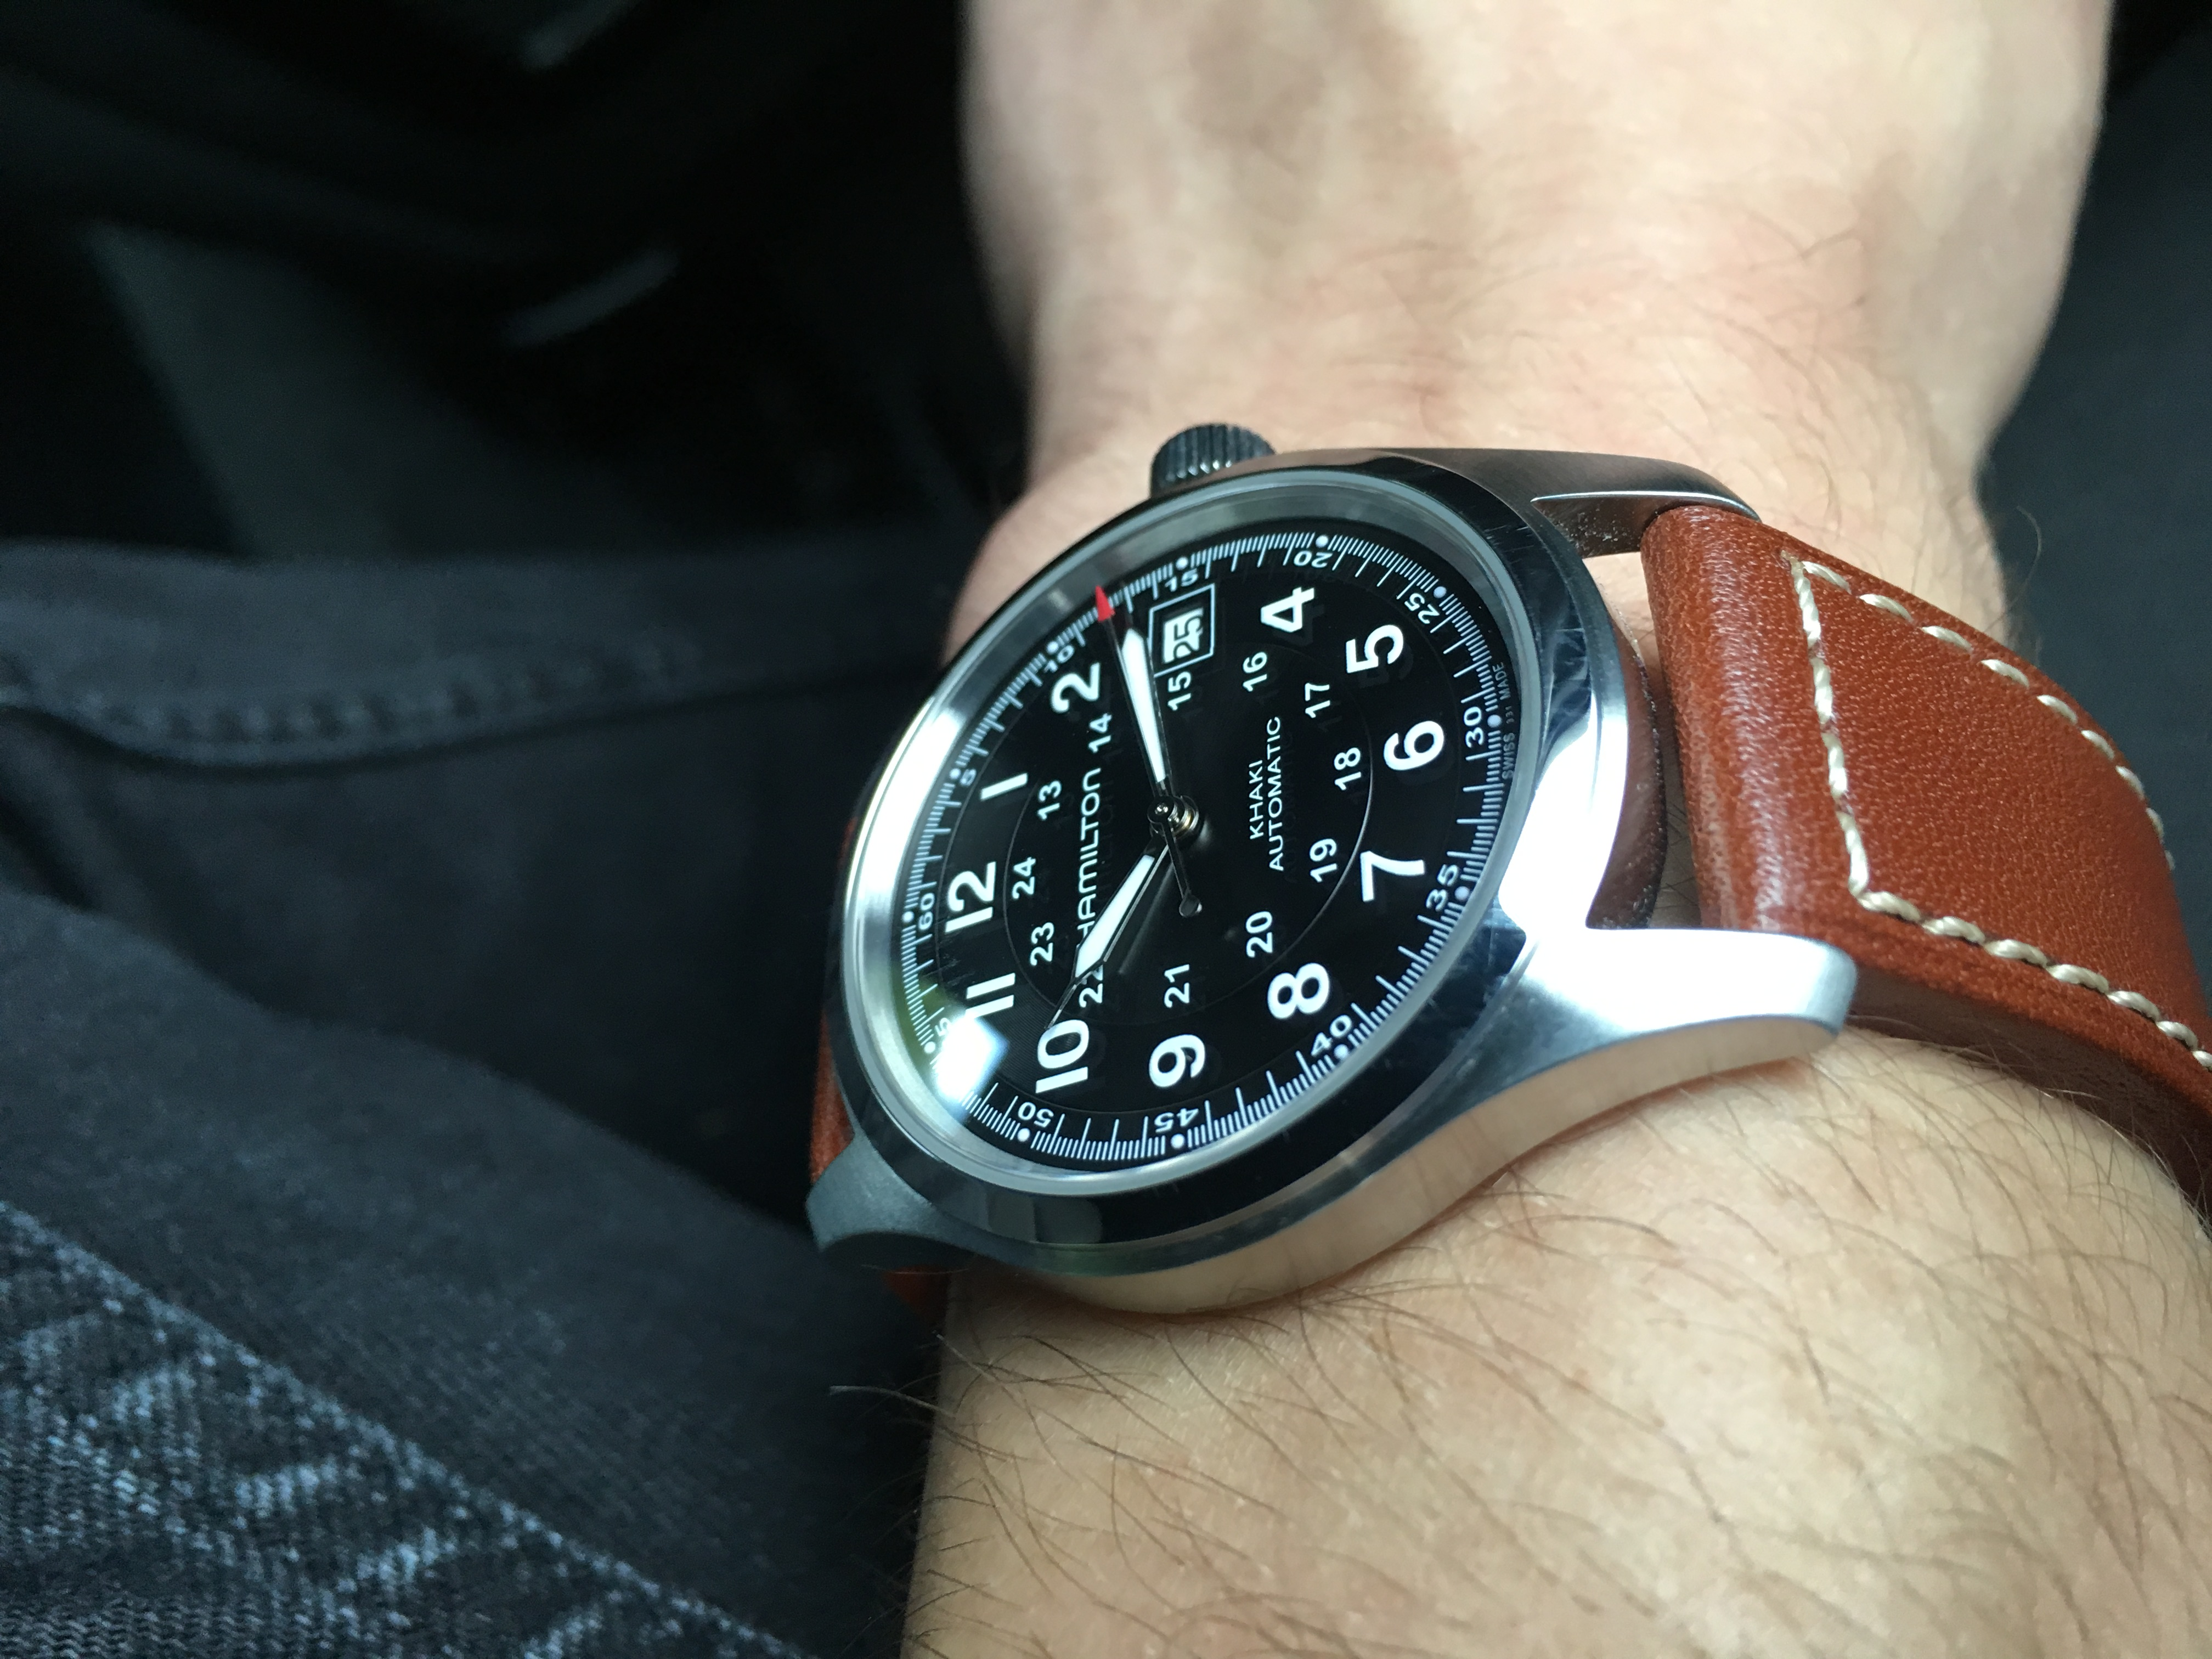 1c8d516e6be ... ships service is, Ive ordered watches from them before and there always  well packaged and delivered extremely fast! The Hamilton khaki field  automatic ...